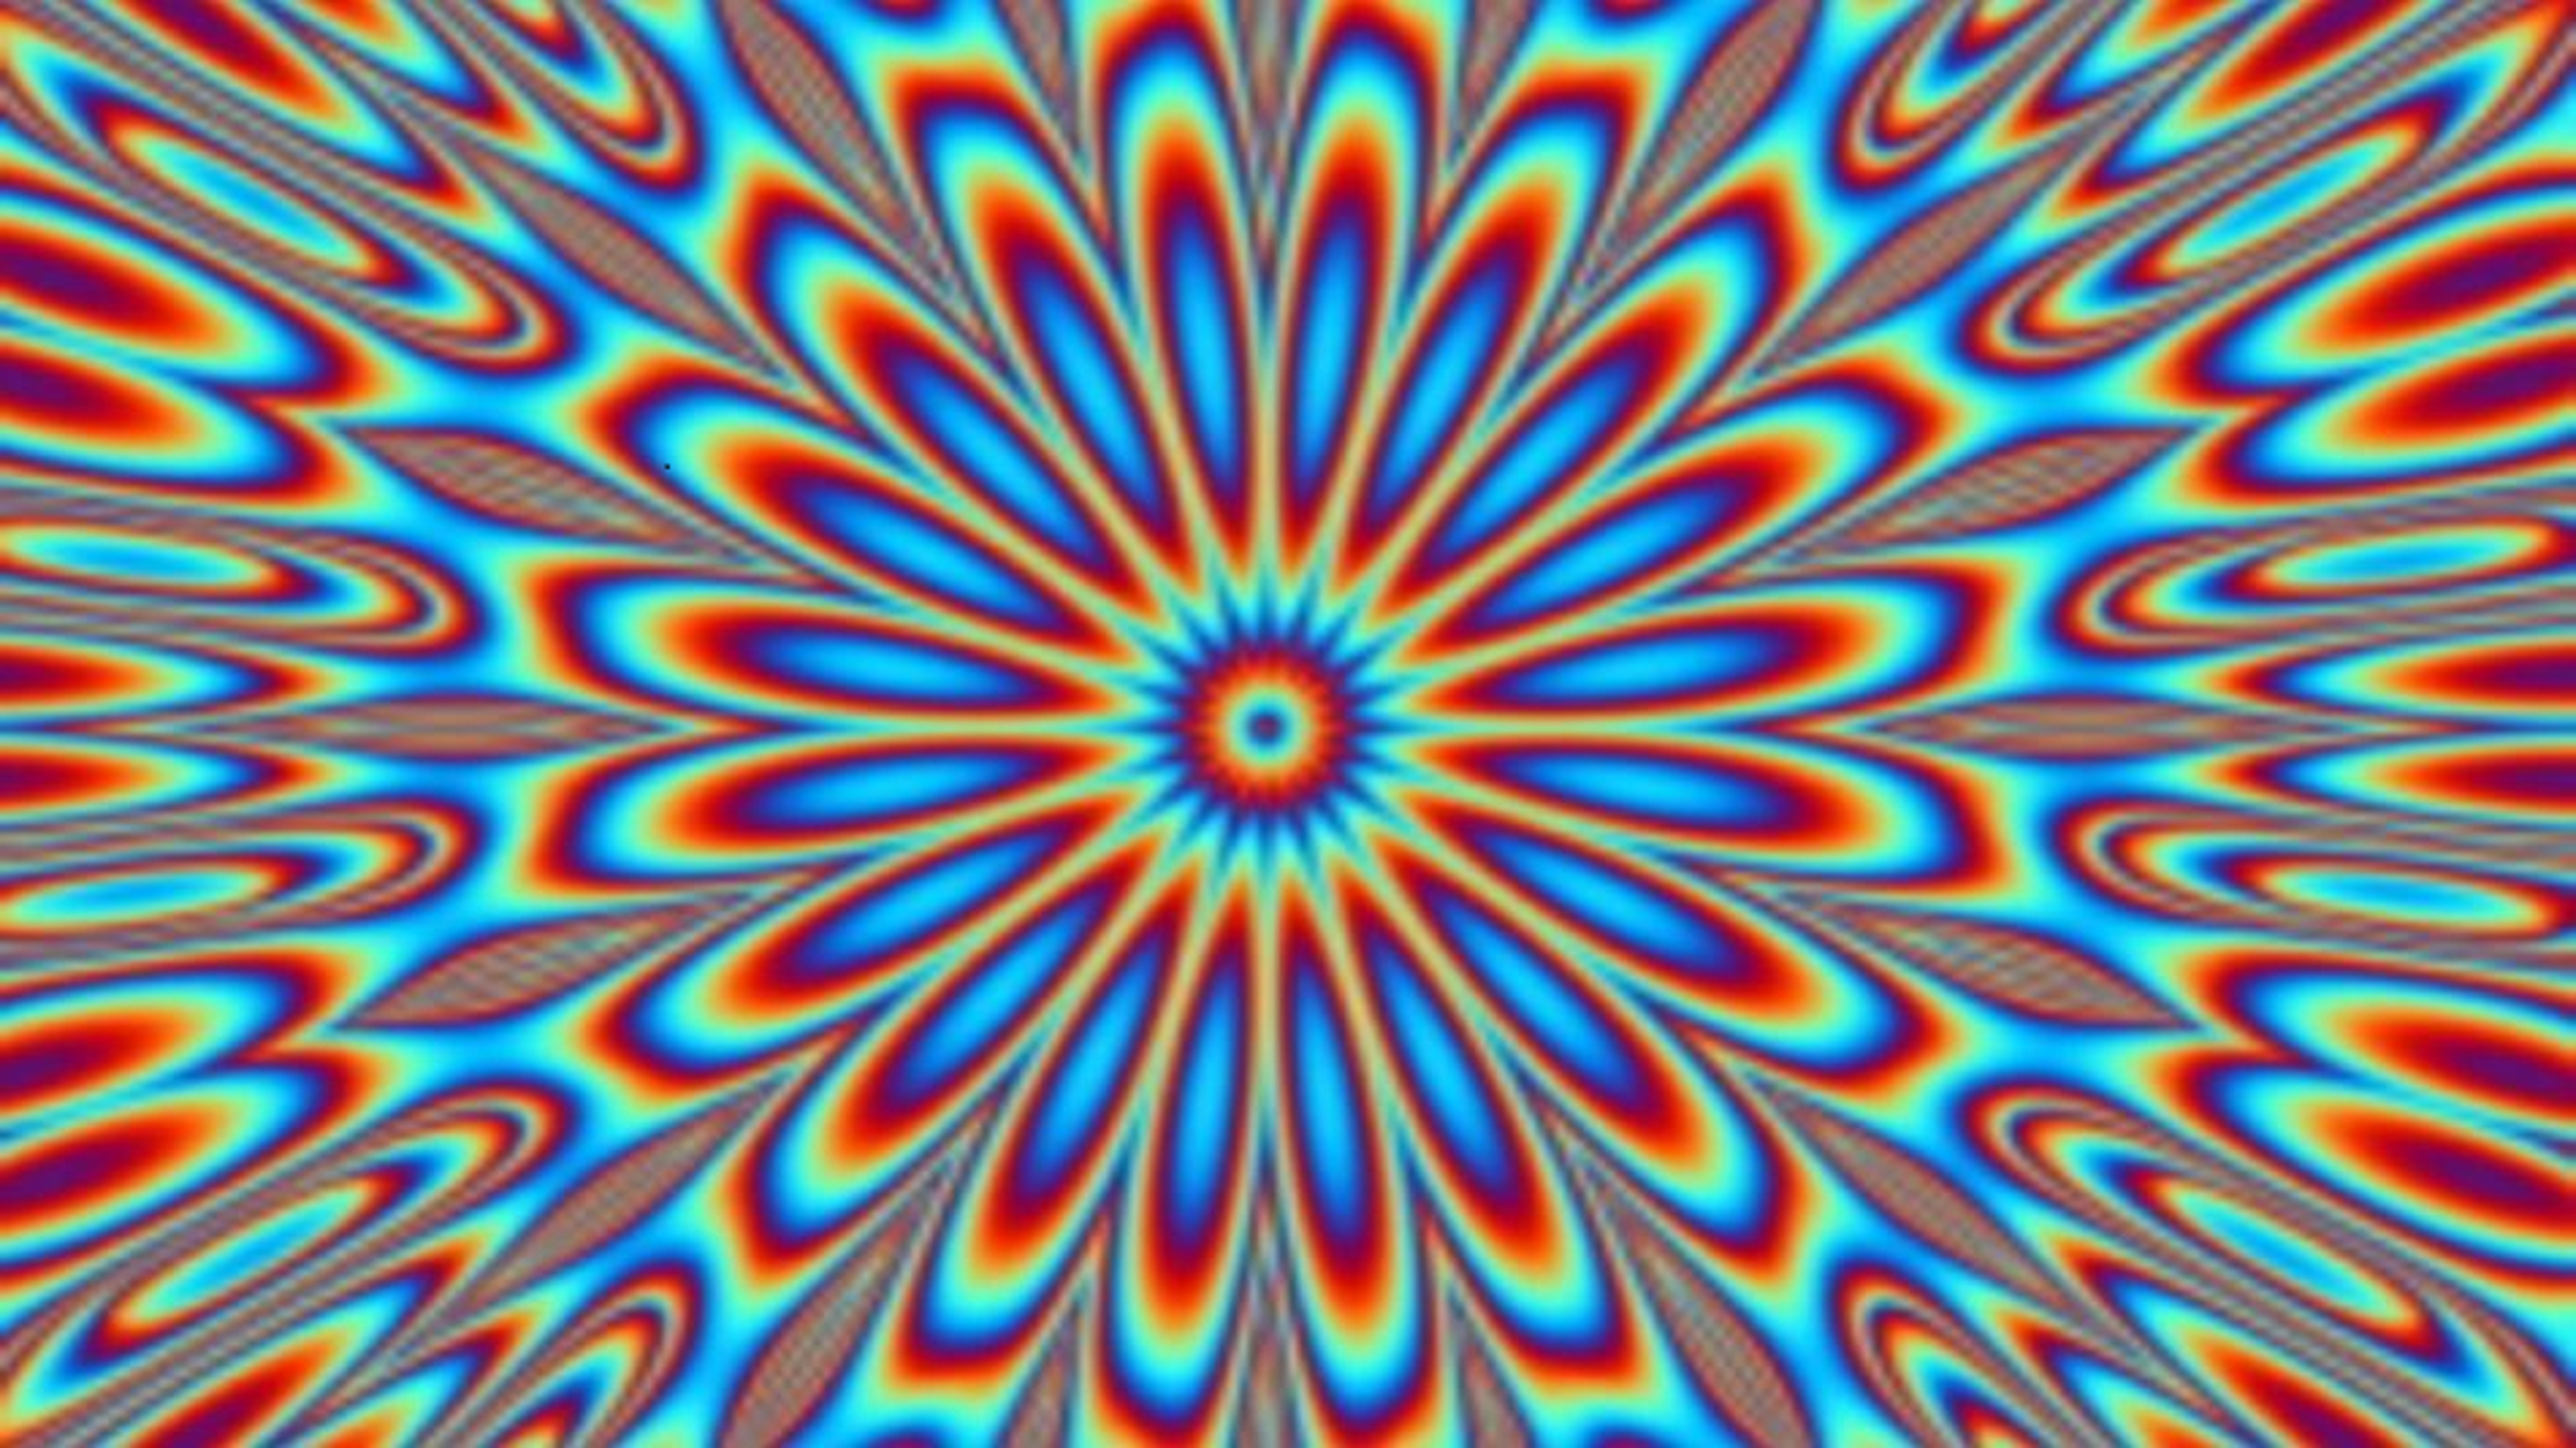 520 Psychedelic HD Wallpapers Backgrounds   Page 2 9900x5564